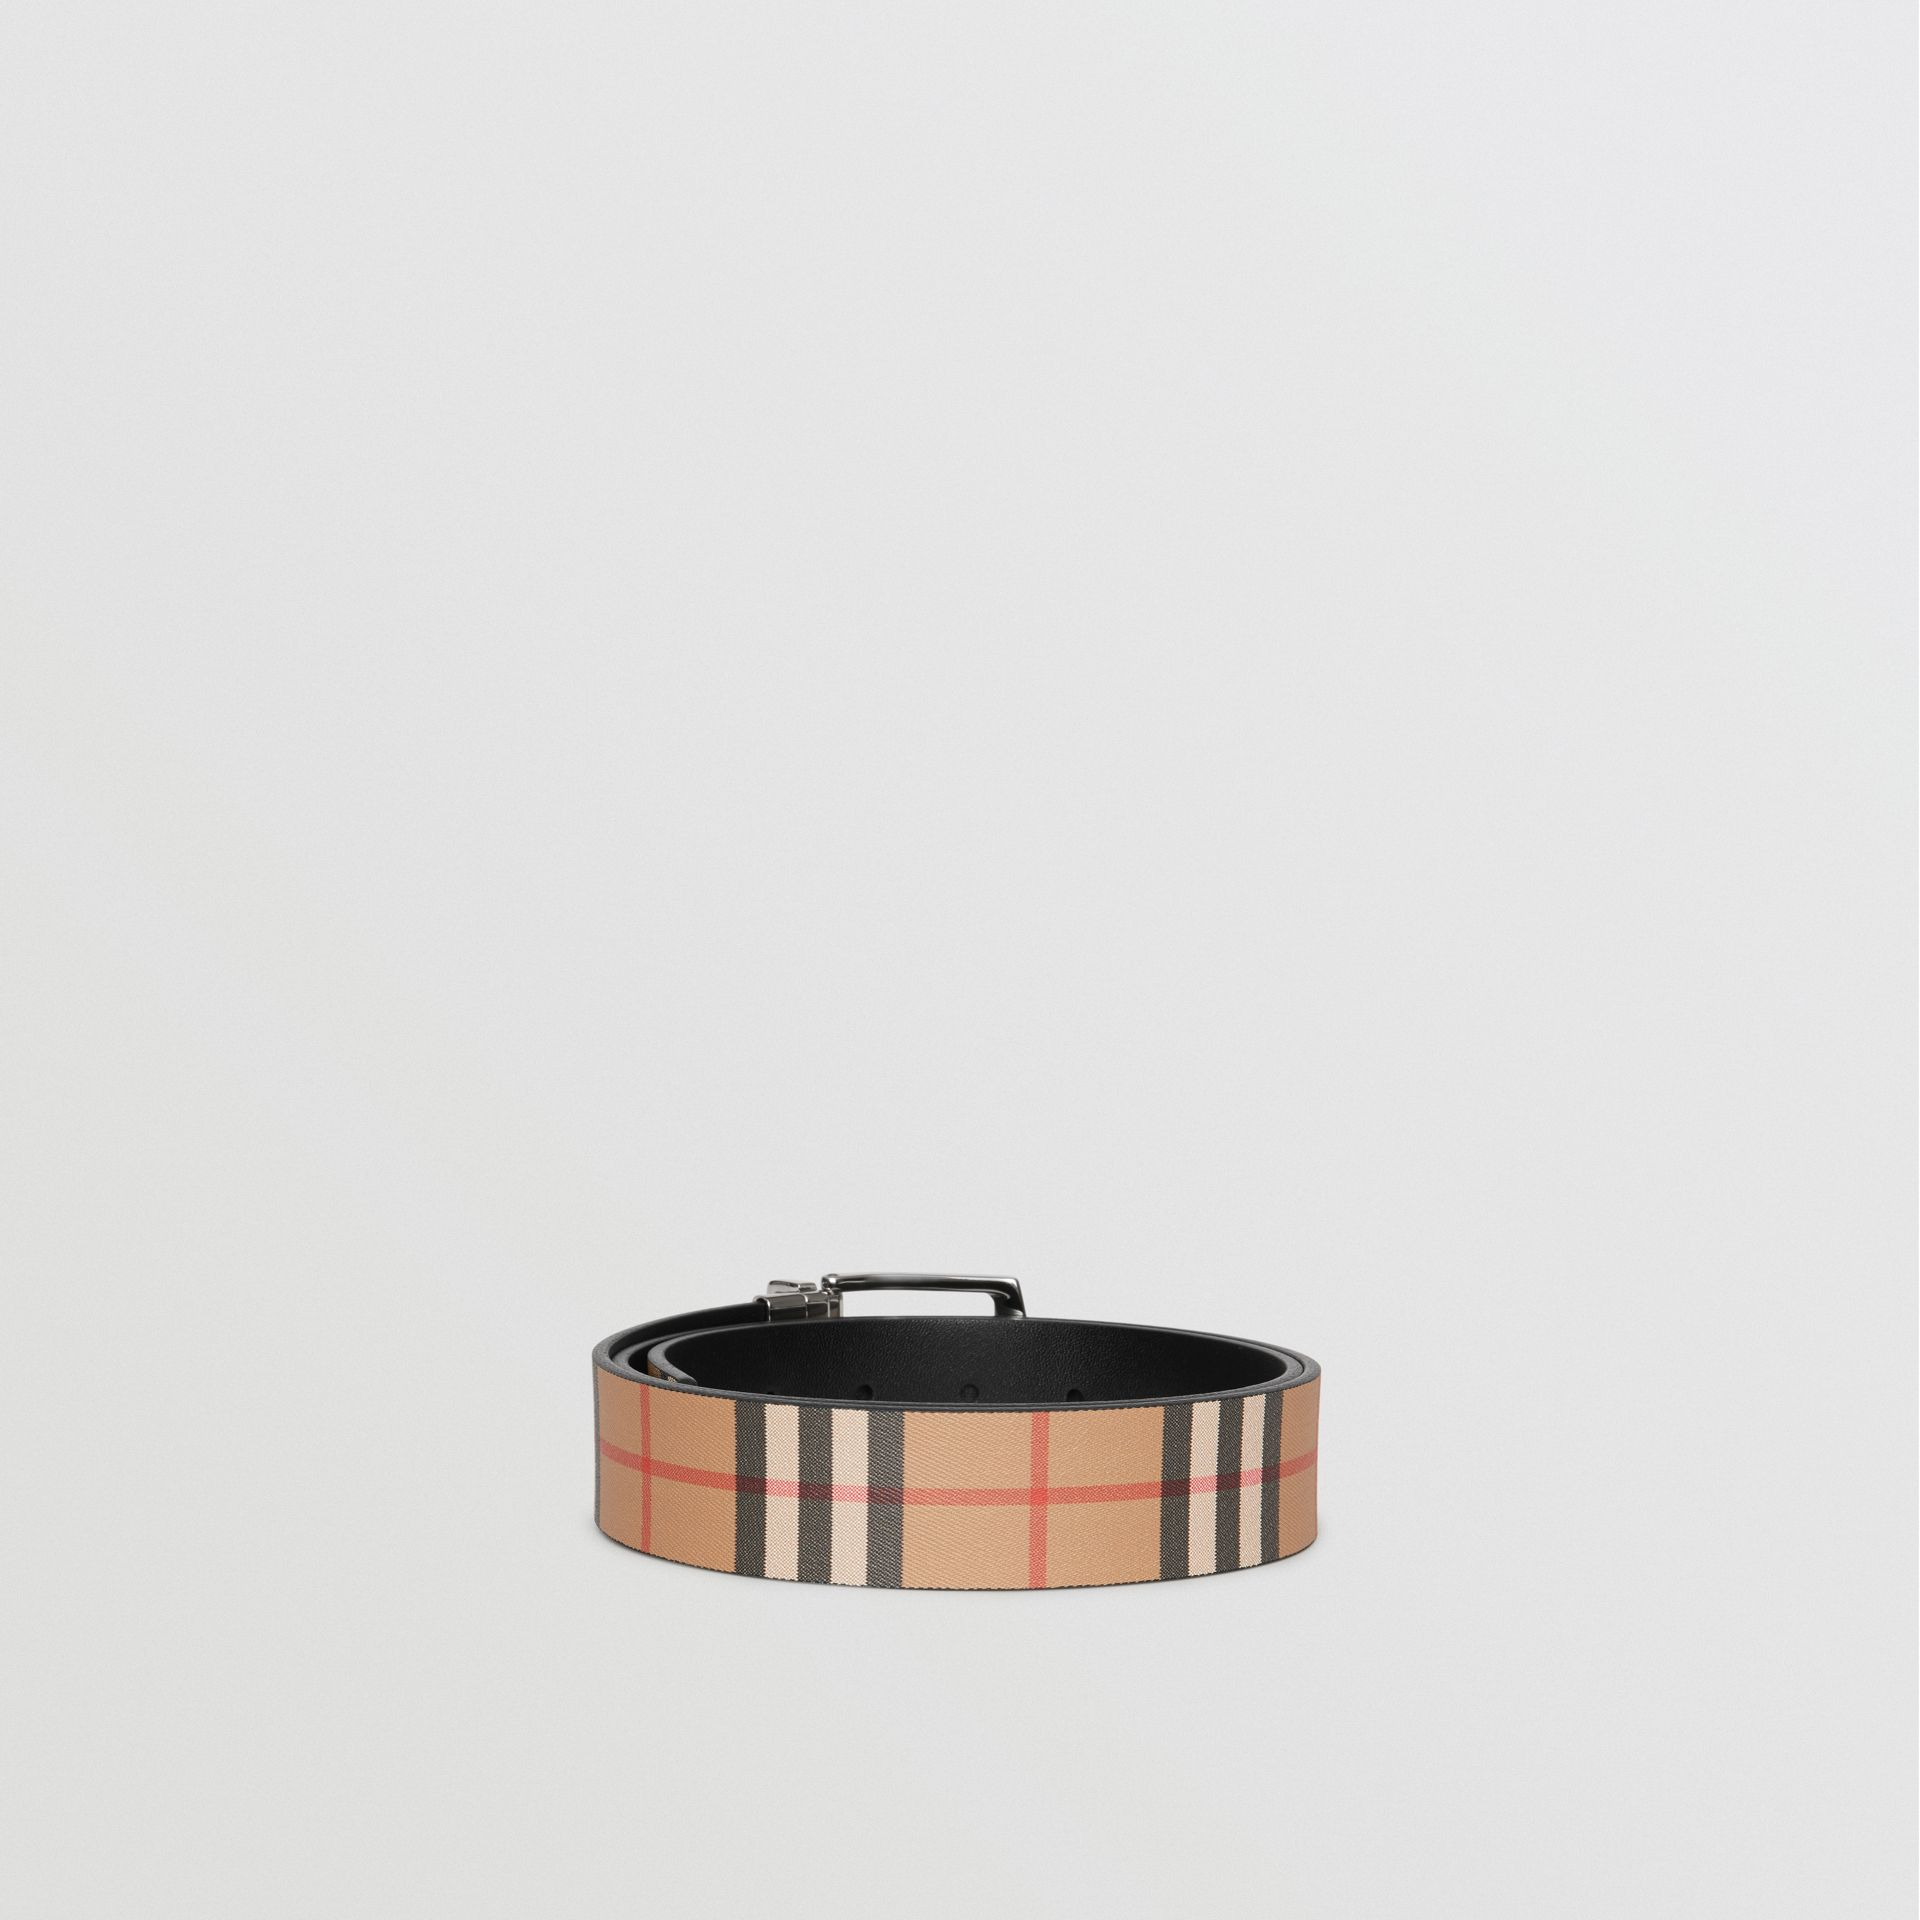 Reversible Vintage Check Leather Belt in Black - Men | Burberry United States - gallery image 5